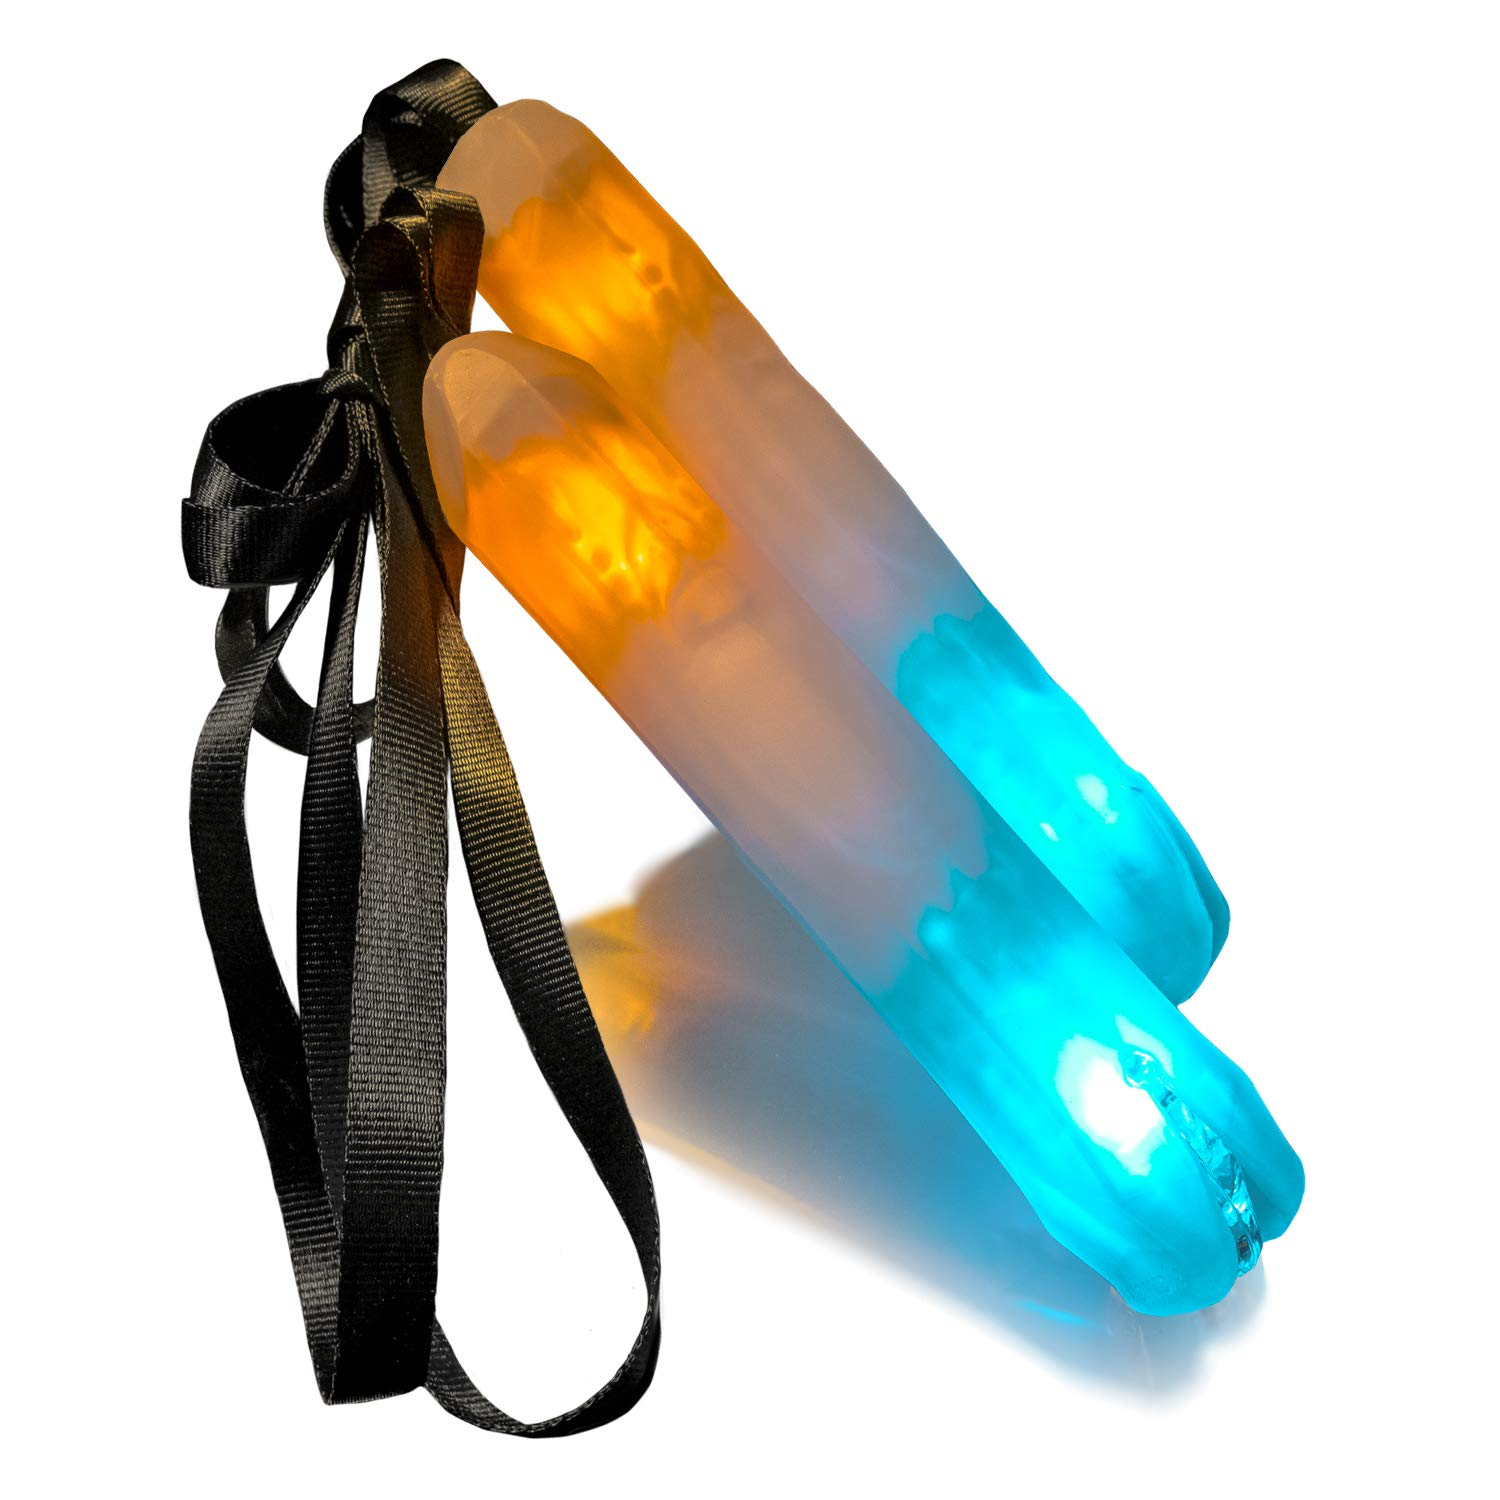 Crystal Poi-FS Lite - Glowstringer LED Light-up Glow Stick Poi for Party, Practice & Flow Arts Play | Batteries & Charger Included